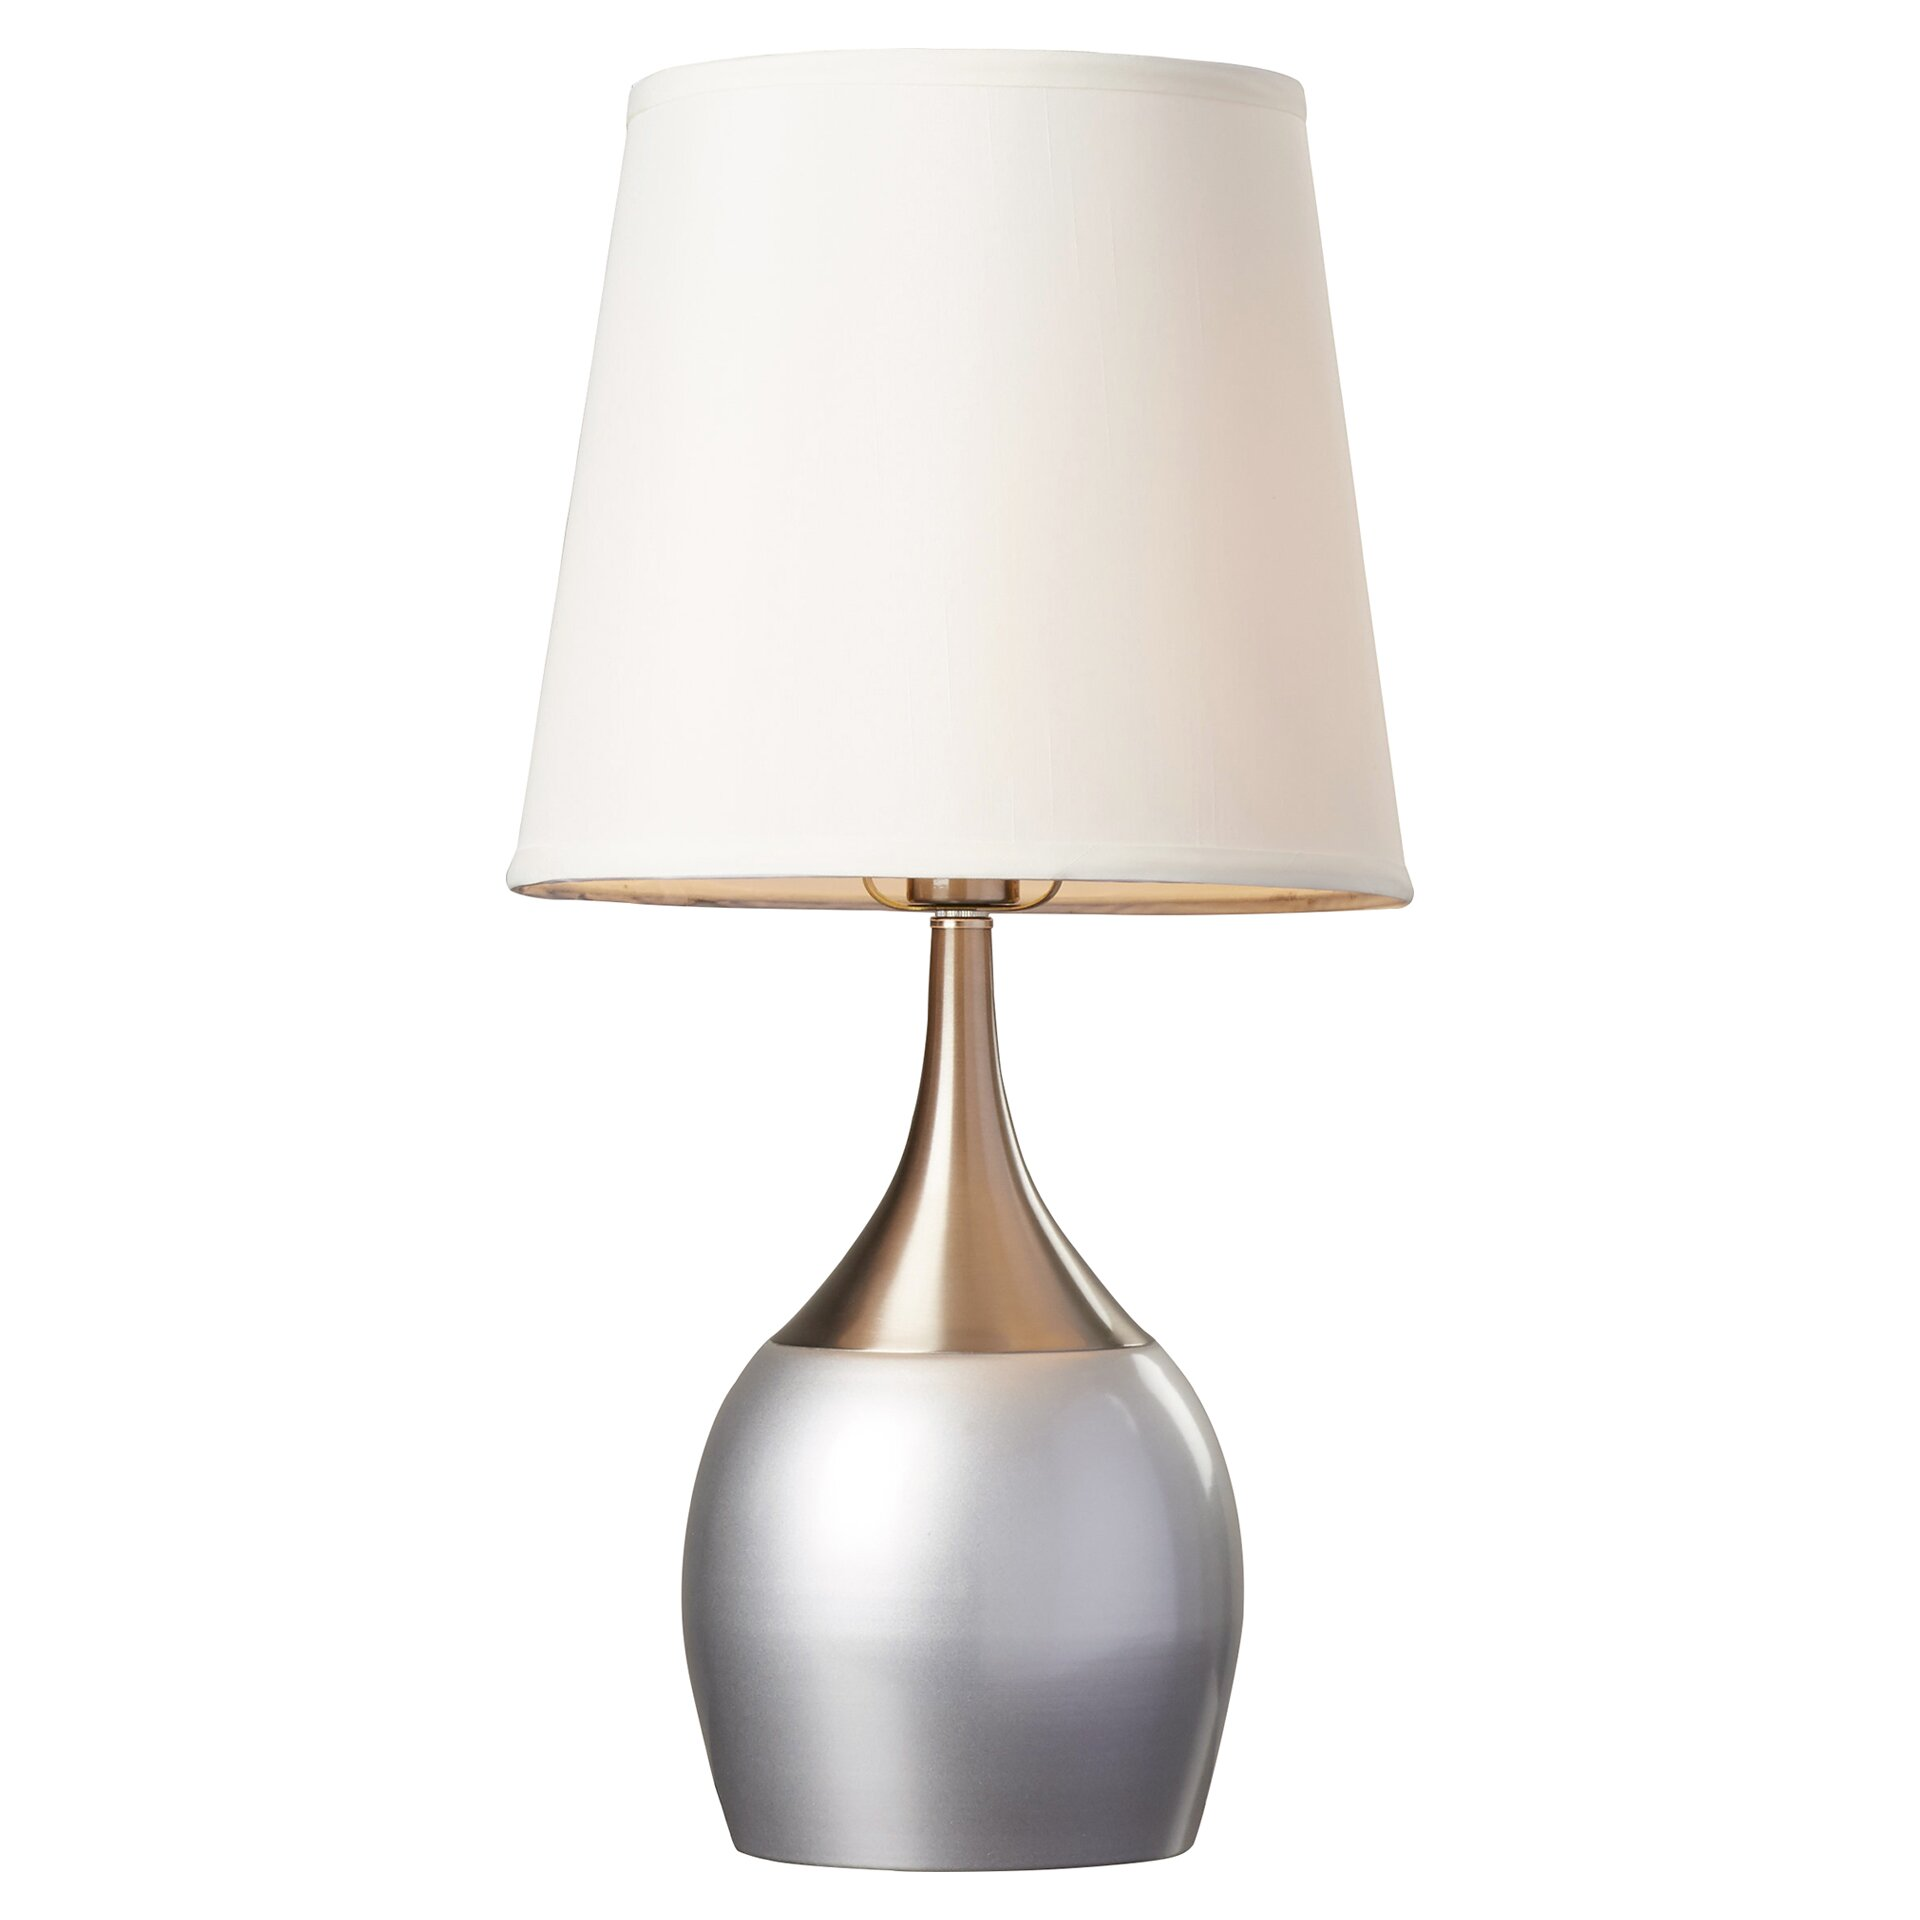 zipcode design barden 24 5 table lamp with empire shade. Black Bedroom Furniture Sets. Home Design Ideas